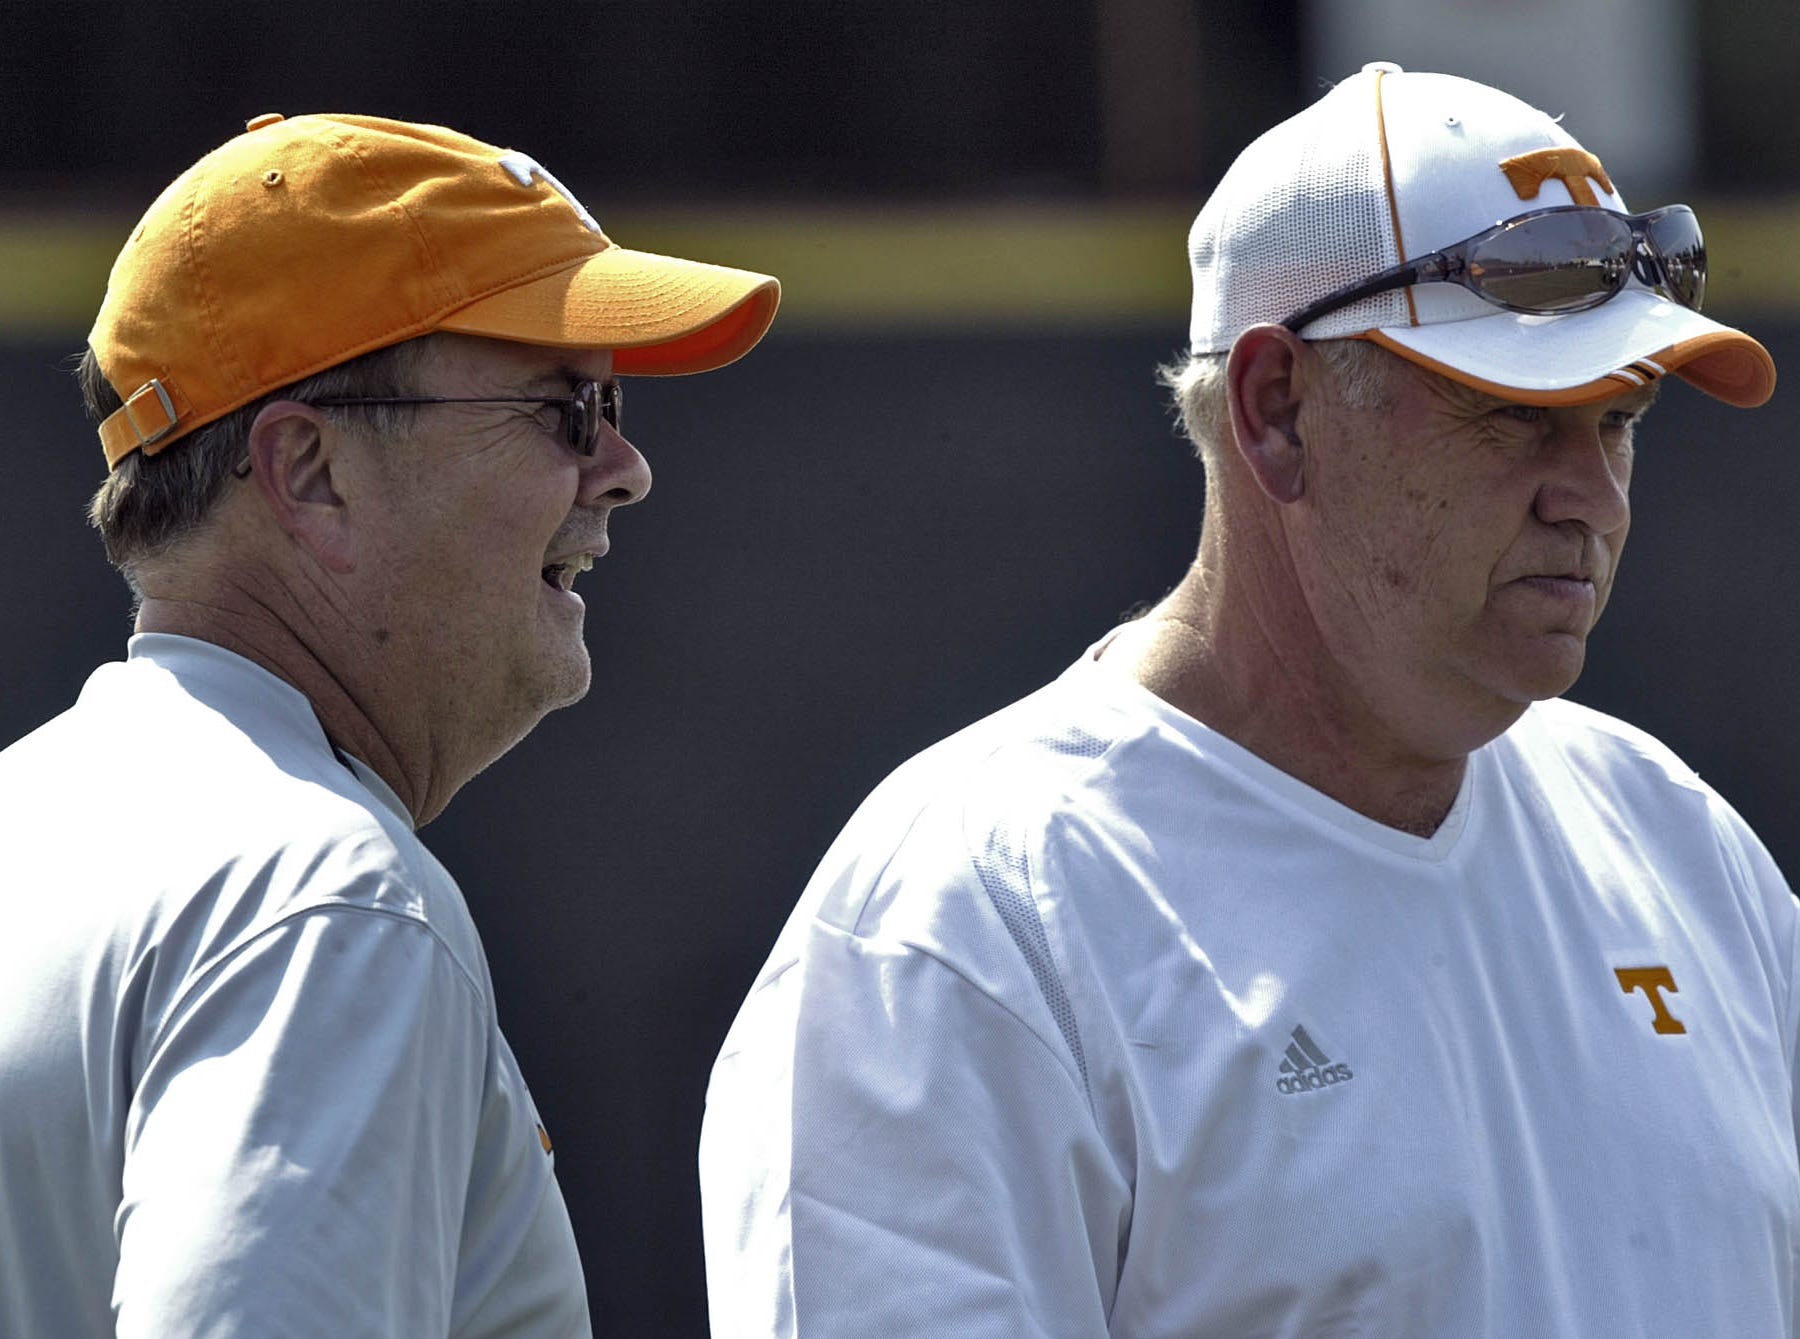 ** ADVANCE FOR WEDNESDAY, AUG. 15 ** Tennessee head coach Phillip Fulmer, right, listens to offensive coordinator David Cutcliffe as they watch during a football practice Tuesday, Aug. 14, 2007, in Knoxville, Tenn.